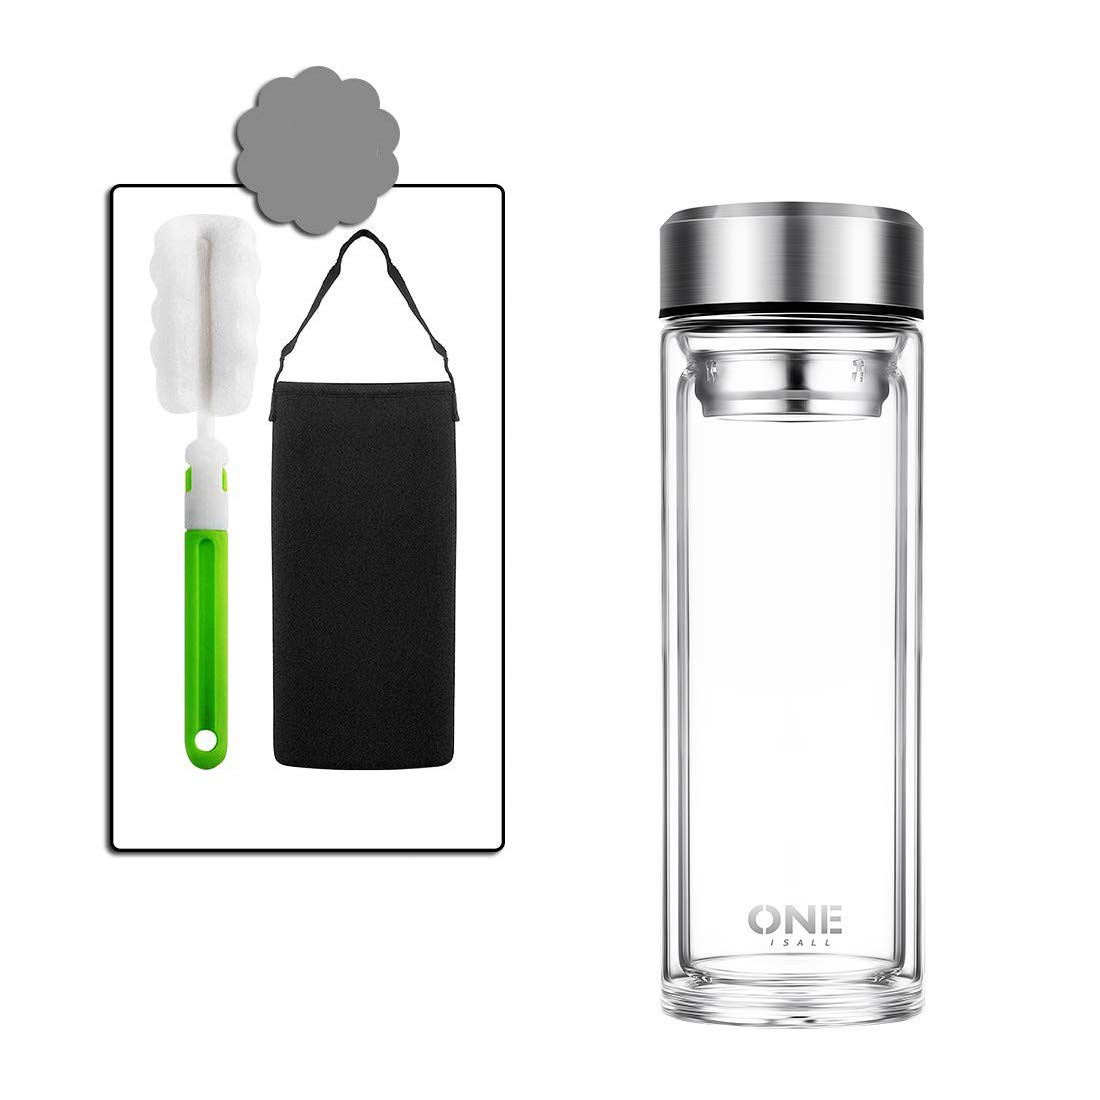 ONEISALL Glass Water Bottle, Double Walled Travel Mug with Removable Stainless Steel Infuser - Glass Tea and Coffee Tumbler with Sleeve Carrier, Lead-Free (600ml/20 oz)